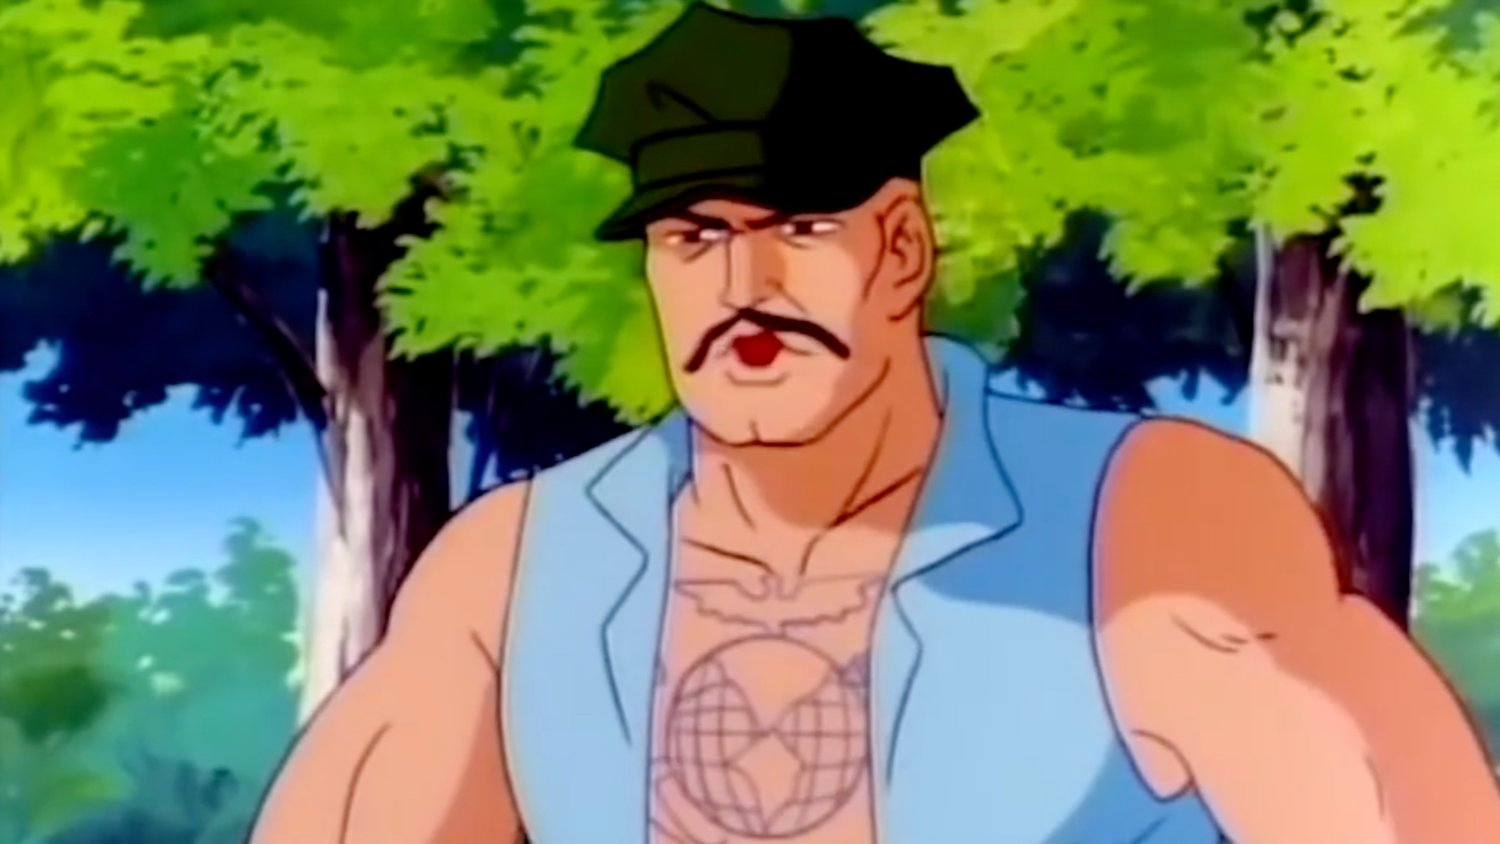 Watch 17 Minutes of Goofy Remade G.I. JOE PSA's With Silly New Dialogue in HD